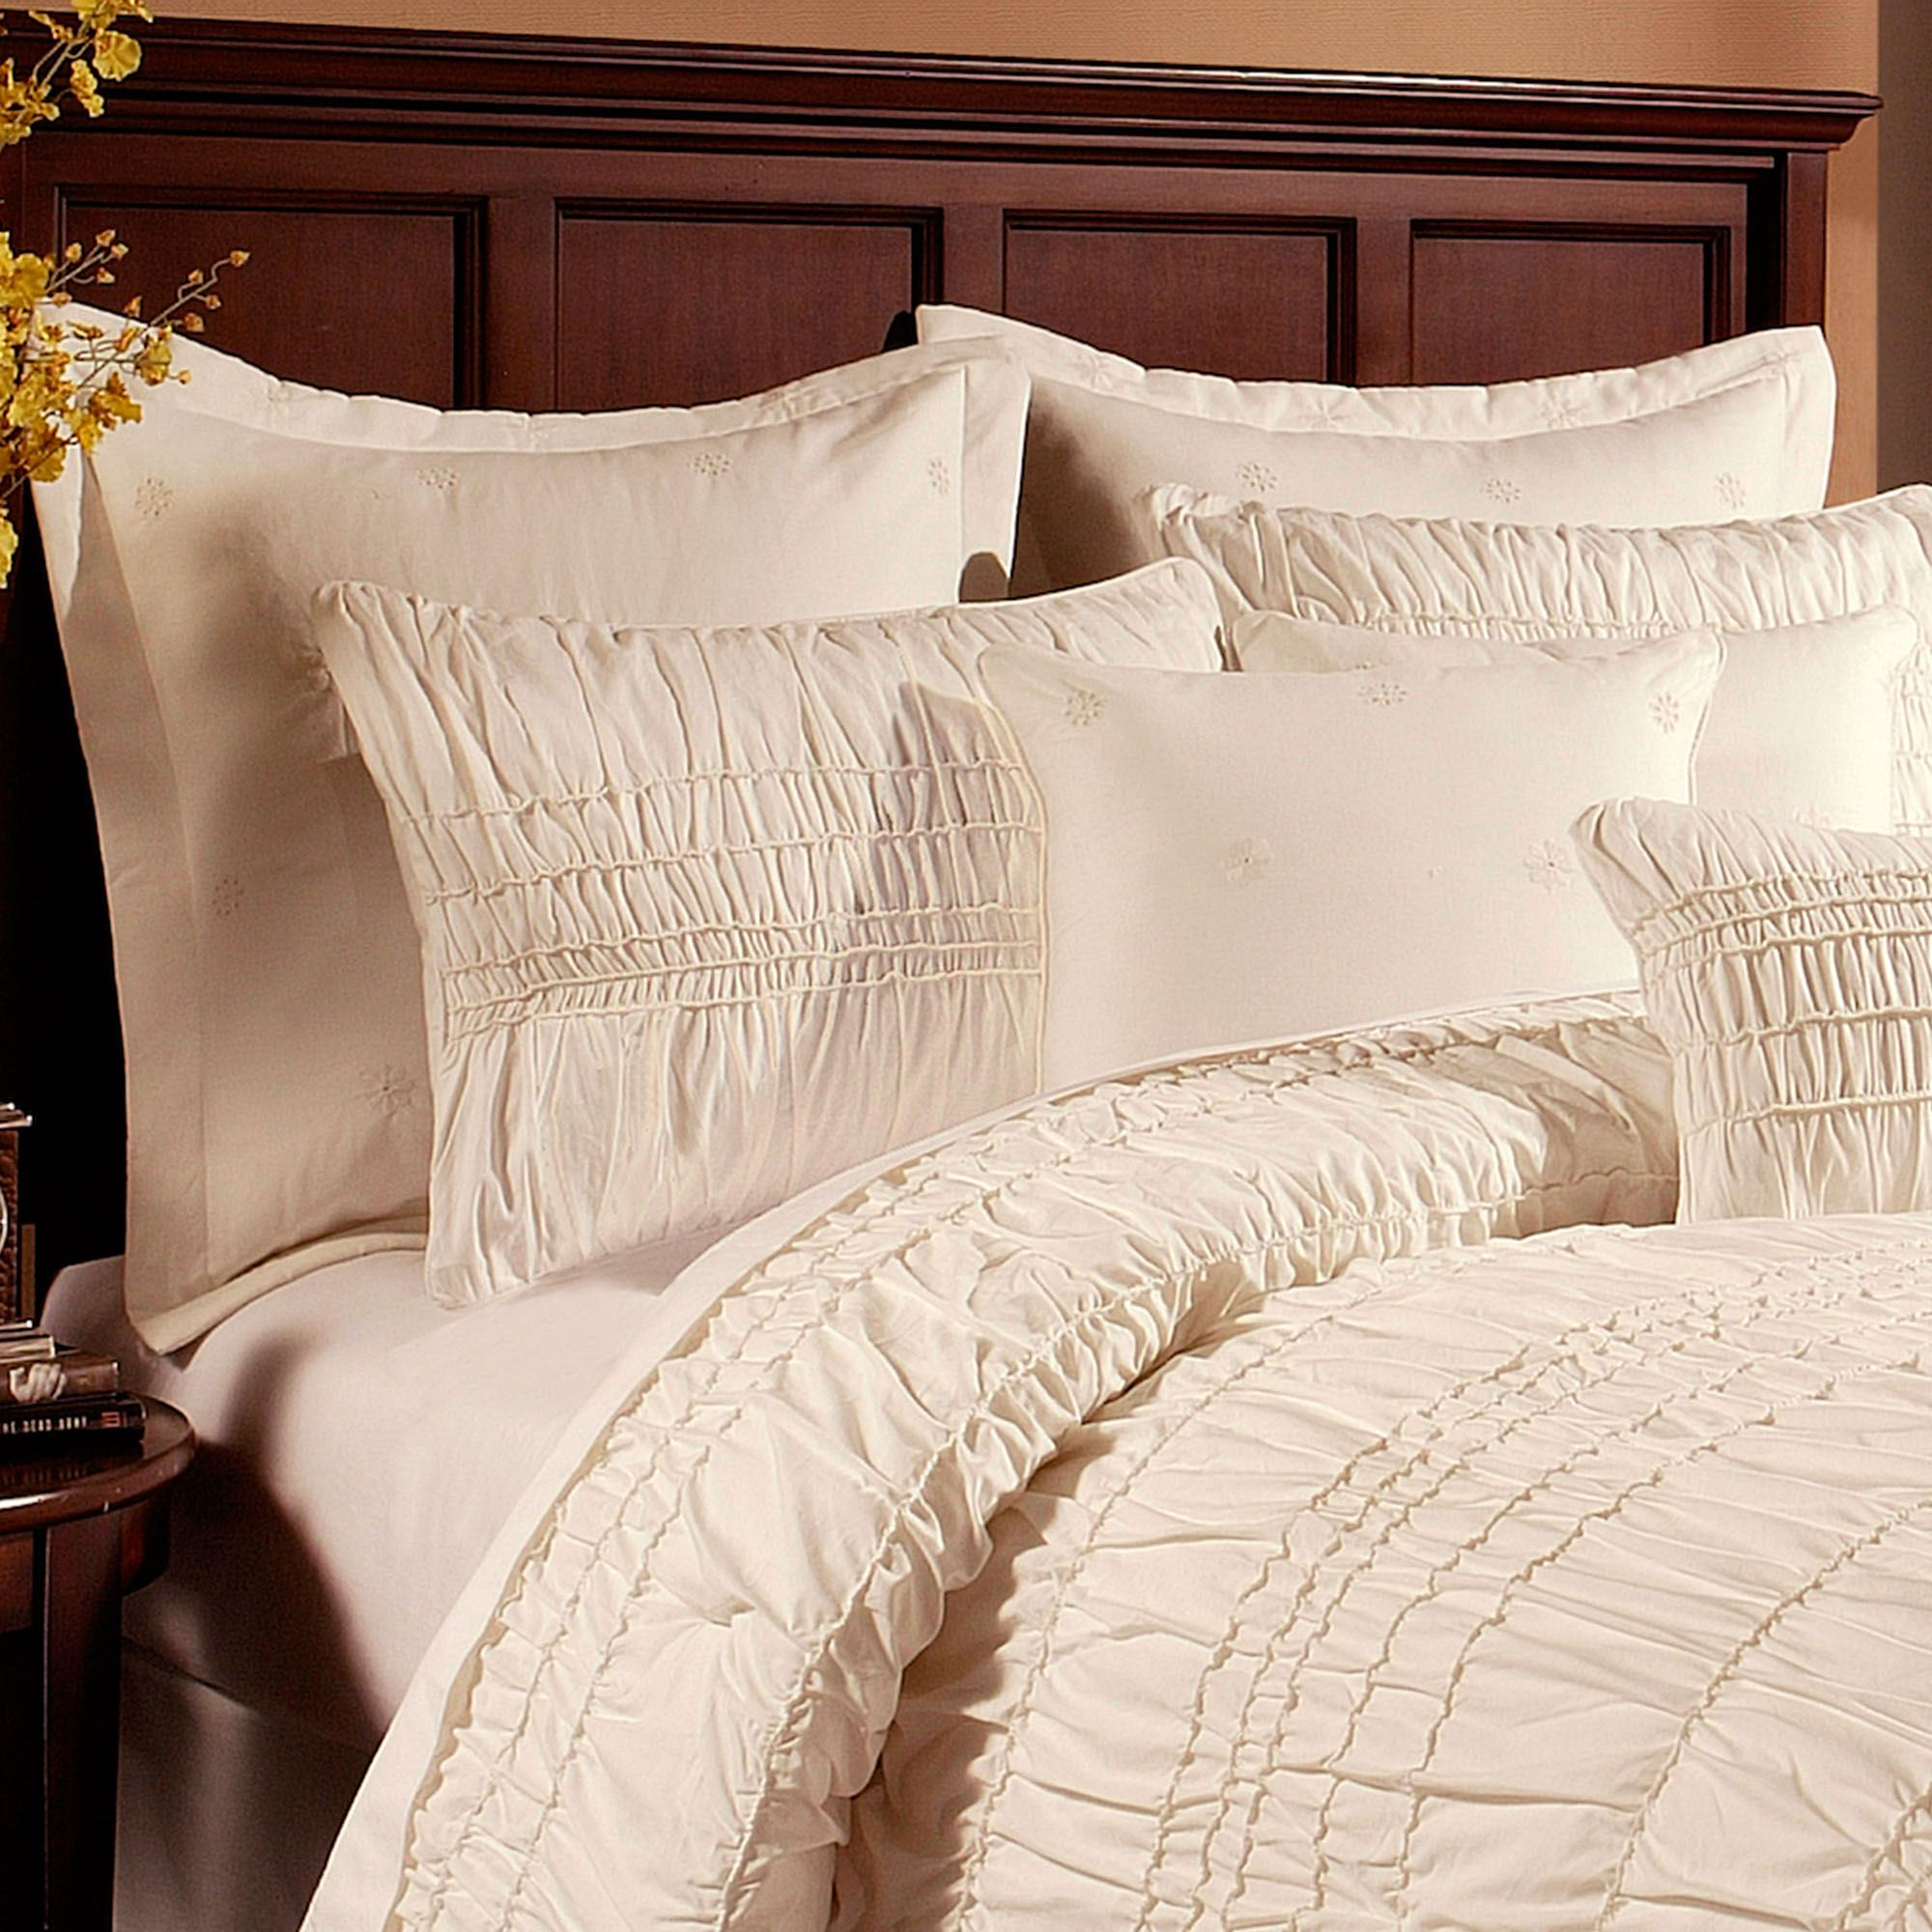 dp chic piece white contemporary comforter home sets queen lauren set kitchen com king oversized amazon